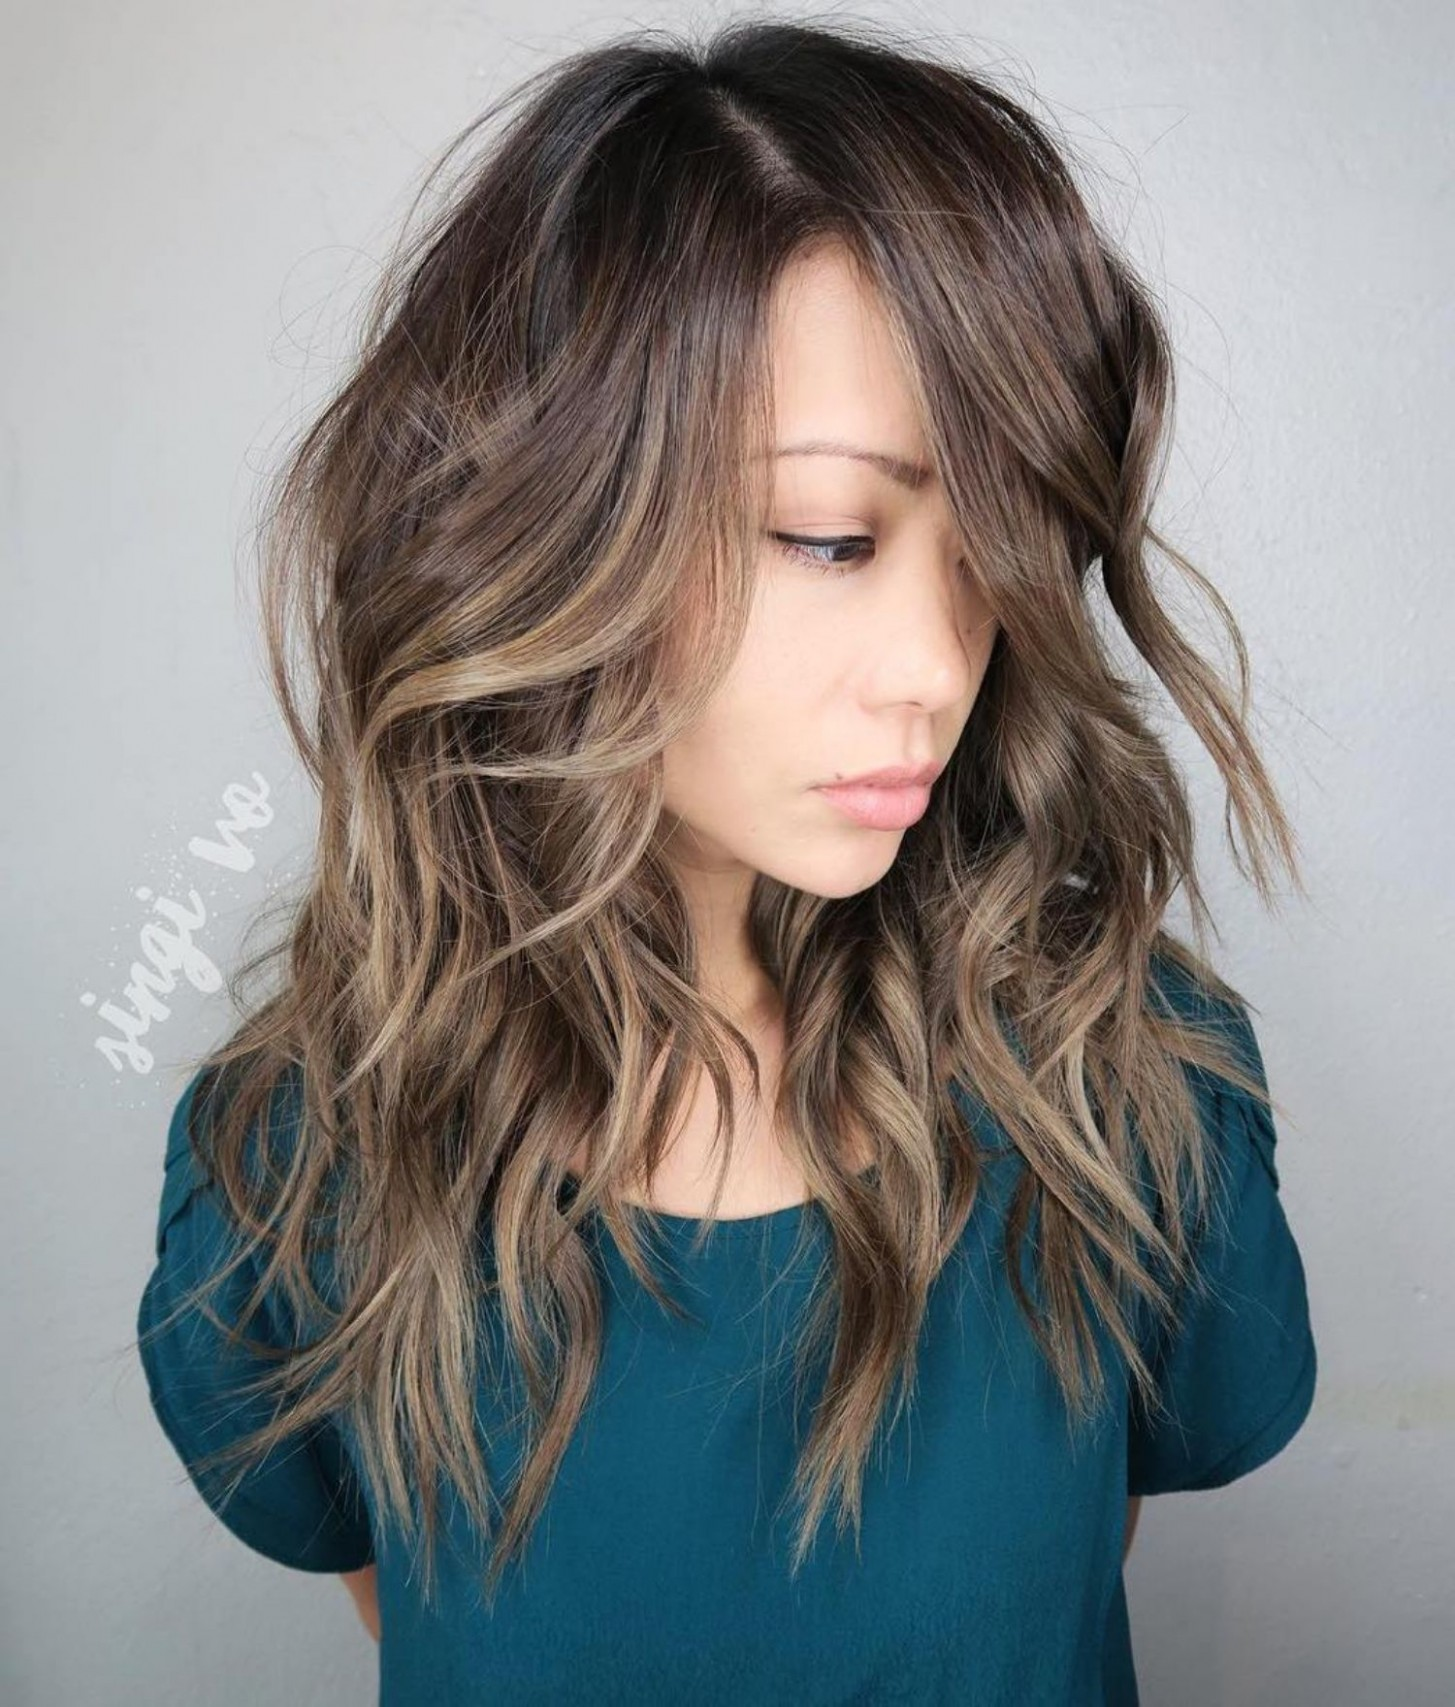 10 Most Beneficial Haircuts For Thick Hair Of Any Length Haircut Long Thick Hairstyles